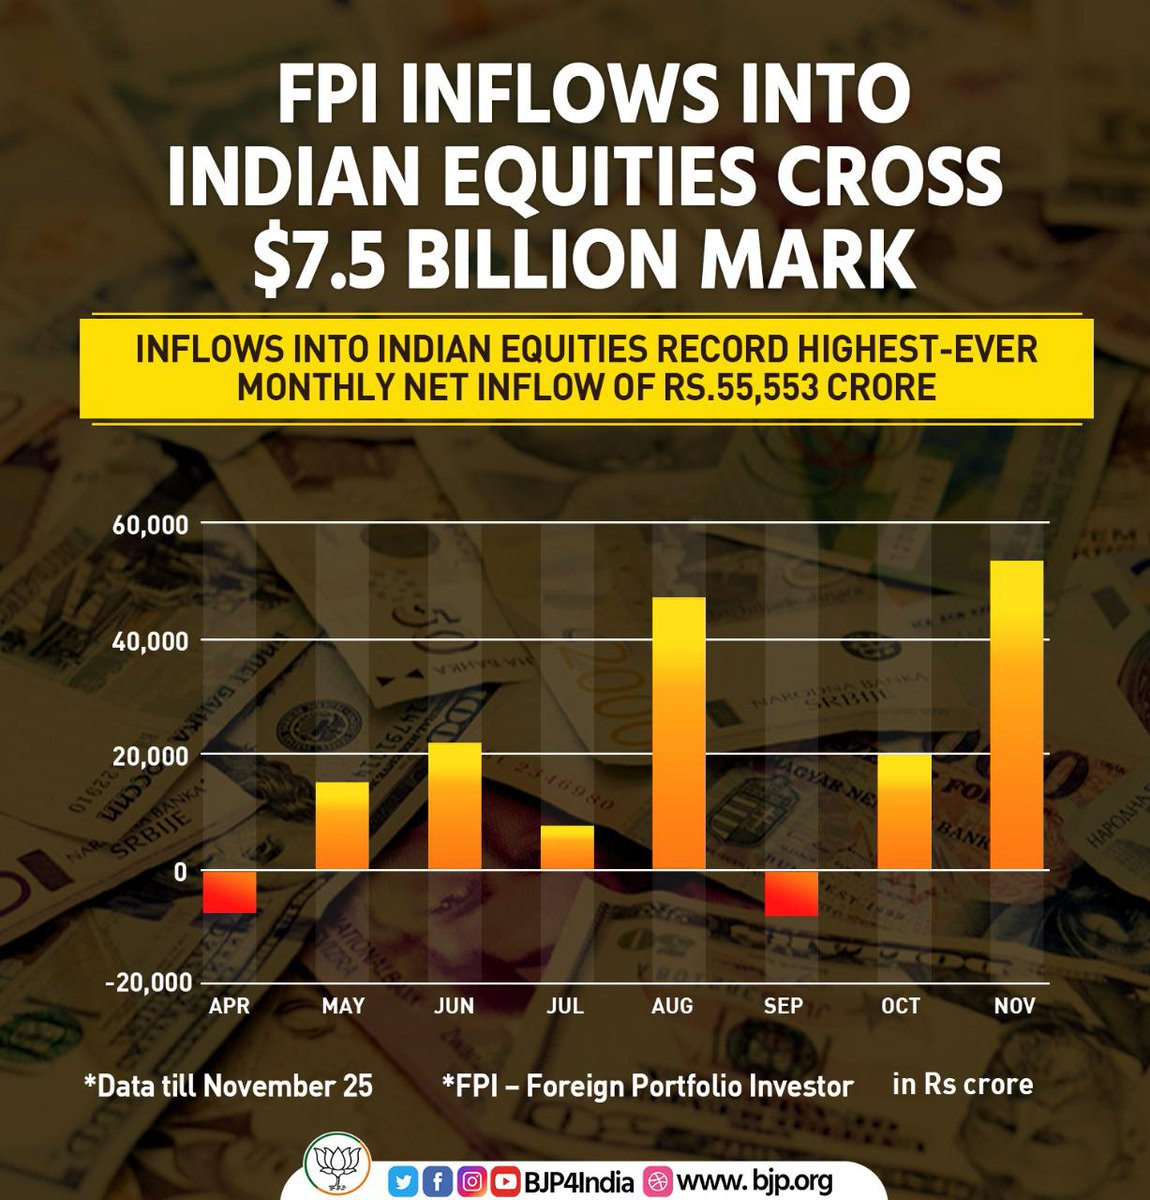 FPI inflows into Indian equities cross $7.5 billion landmark.  It has recorded highest ever monthly net inflow of Rs 55,553 crore in November 2020.  #EconomyRebounds